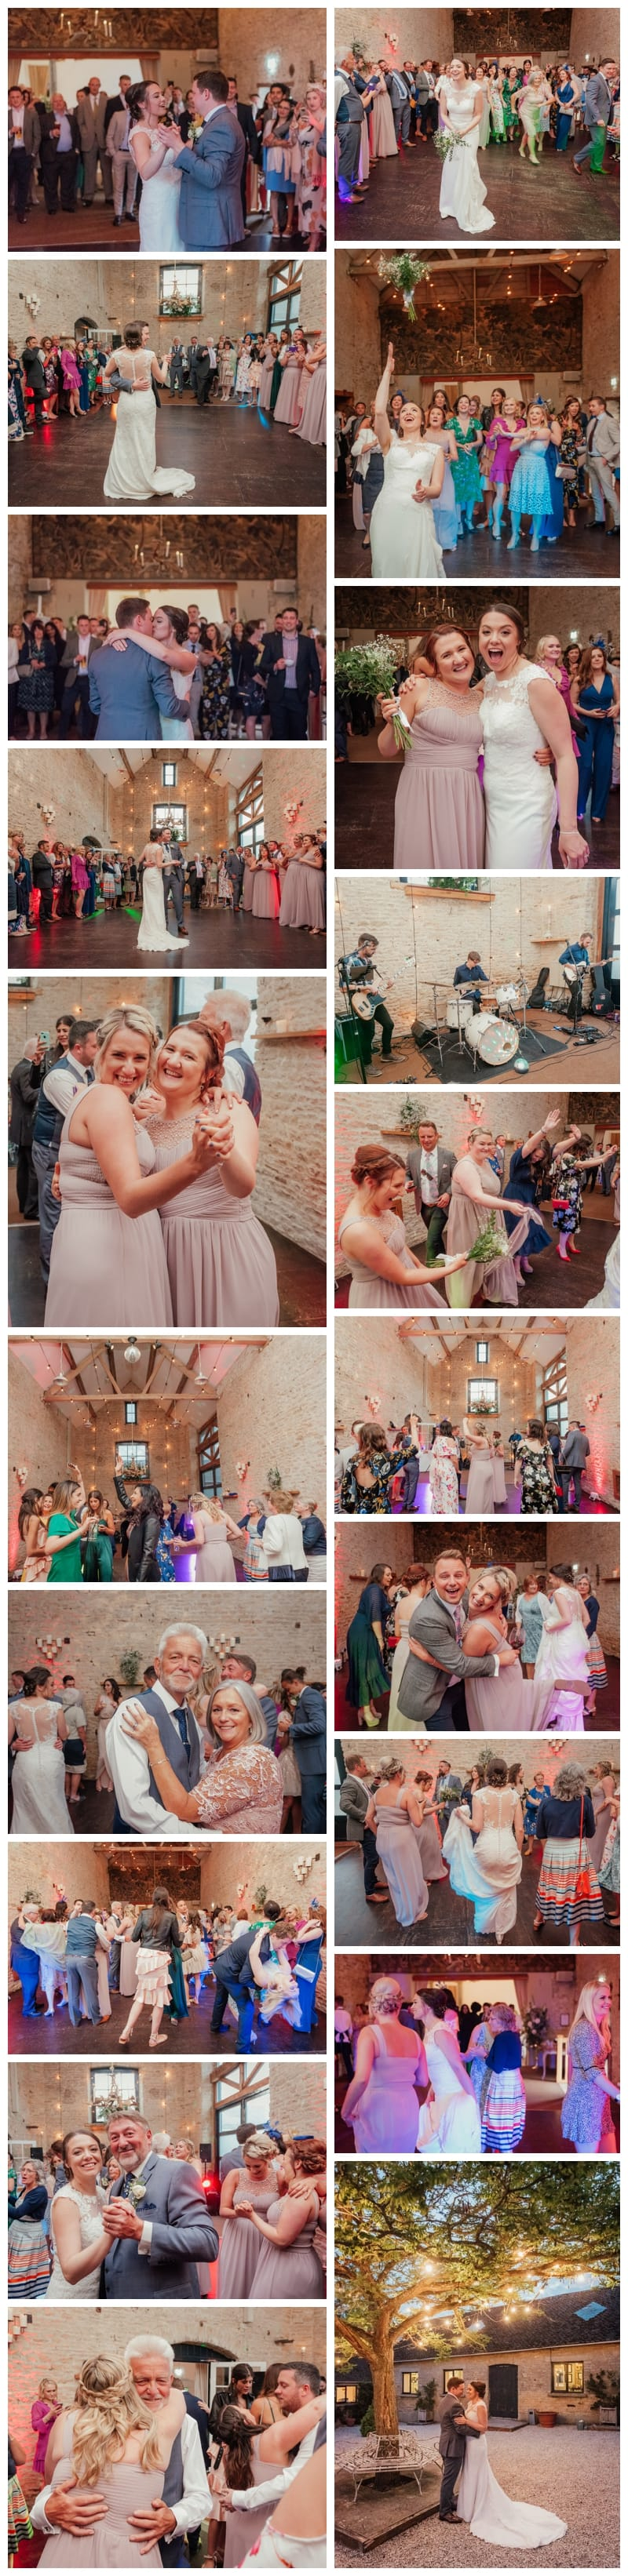 First Dance Merriscourt Cotswolds Wedding